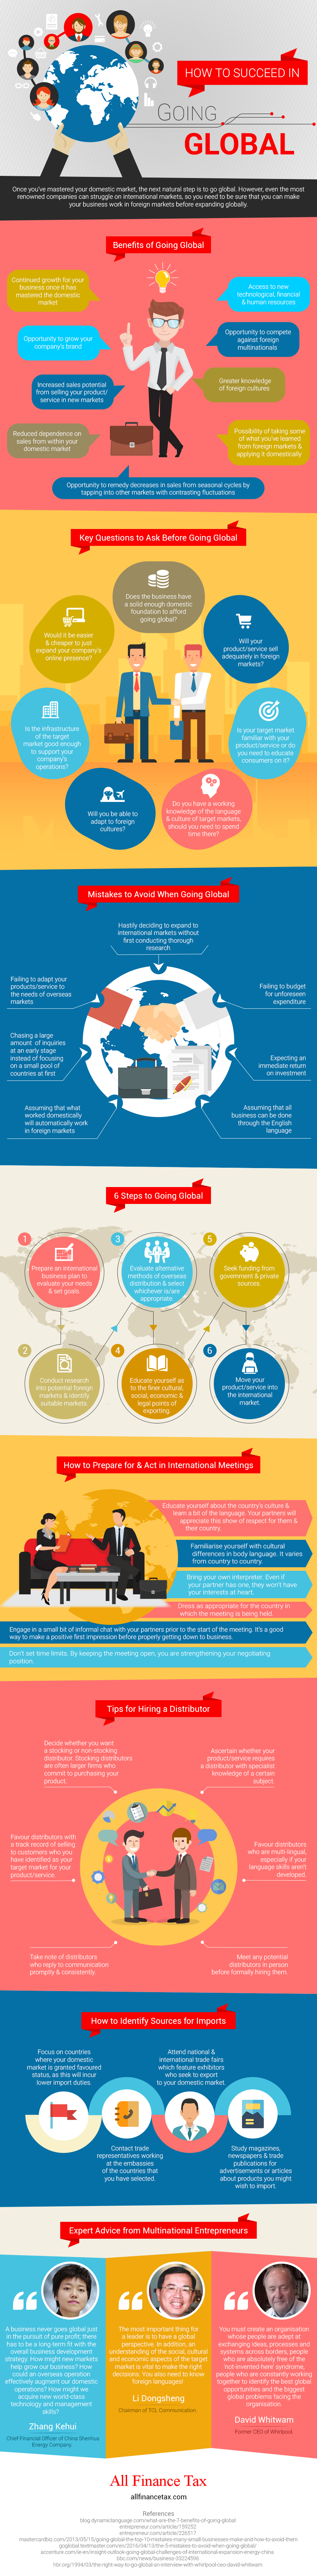 How-to-Succeed-in-Going-Global-Visual Asset